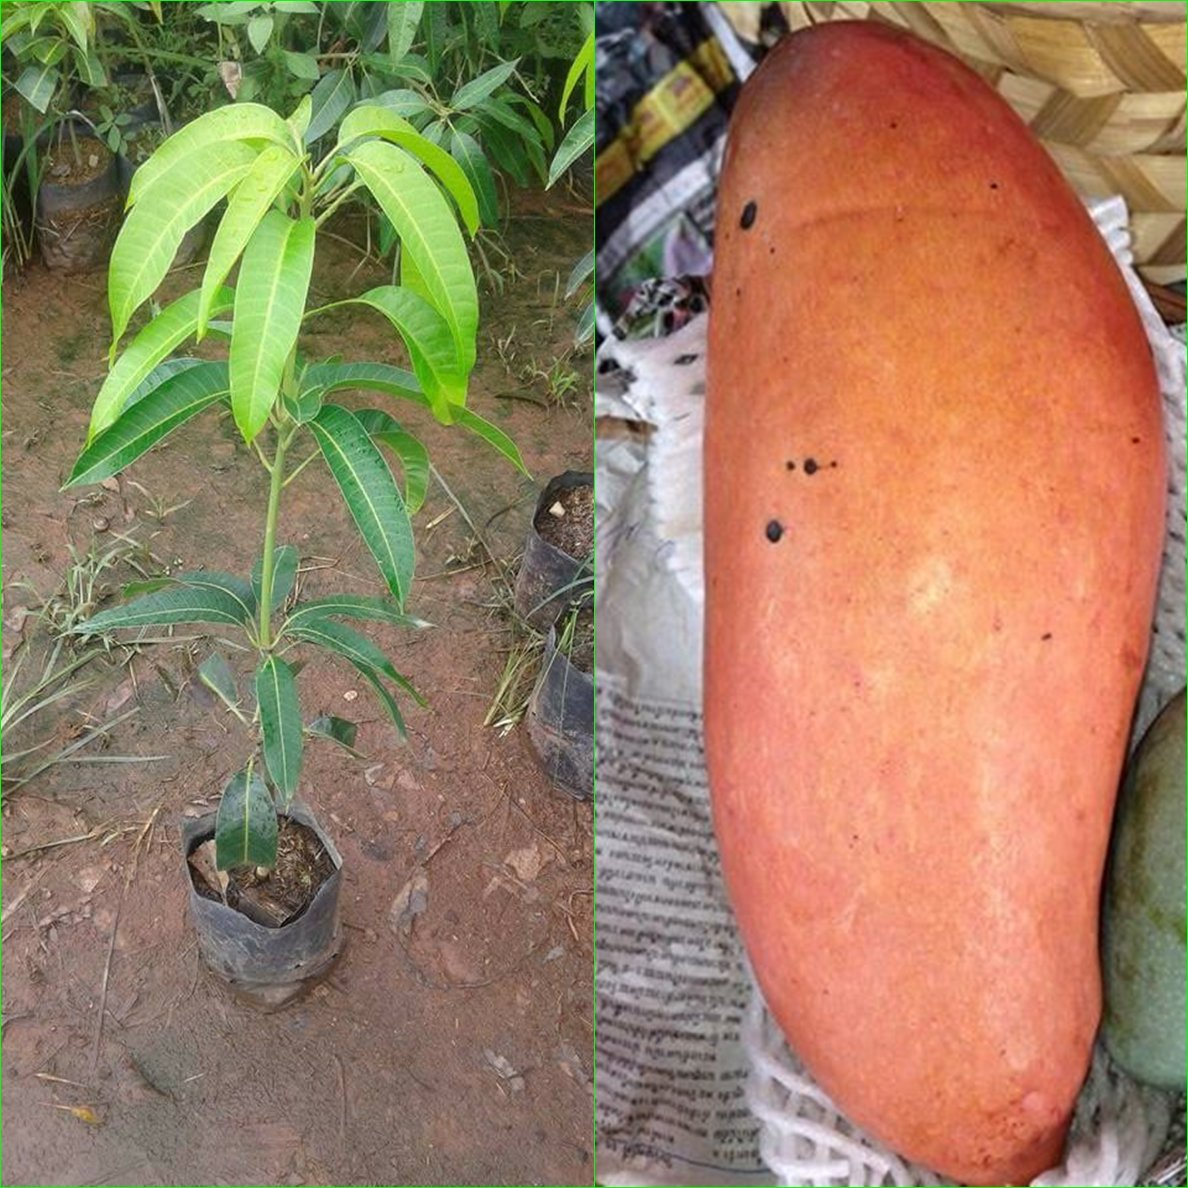 1 GRAFTED Mango Tree plant Nga Chang Daeng 18'' Tall Thai Red Mango Fruit Juicy Direct from Thailand Free Phytosanitary Cert.